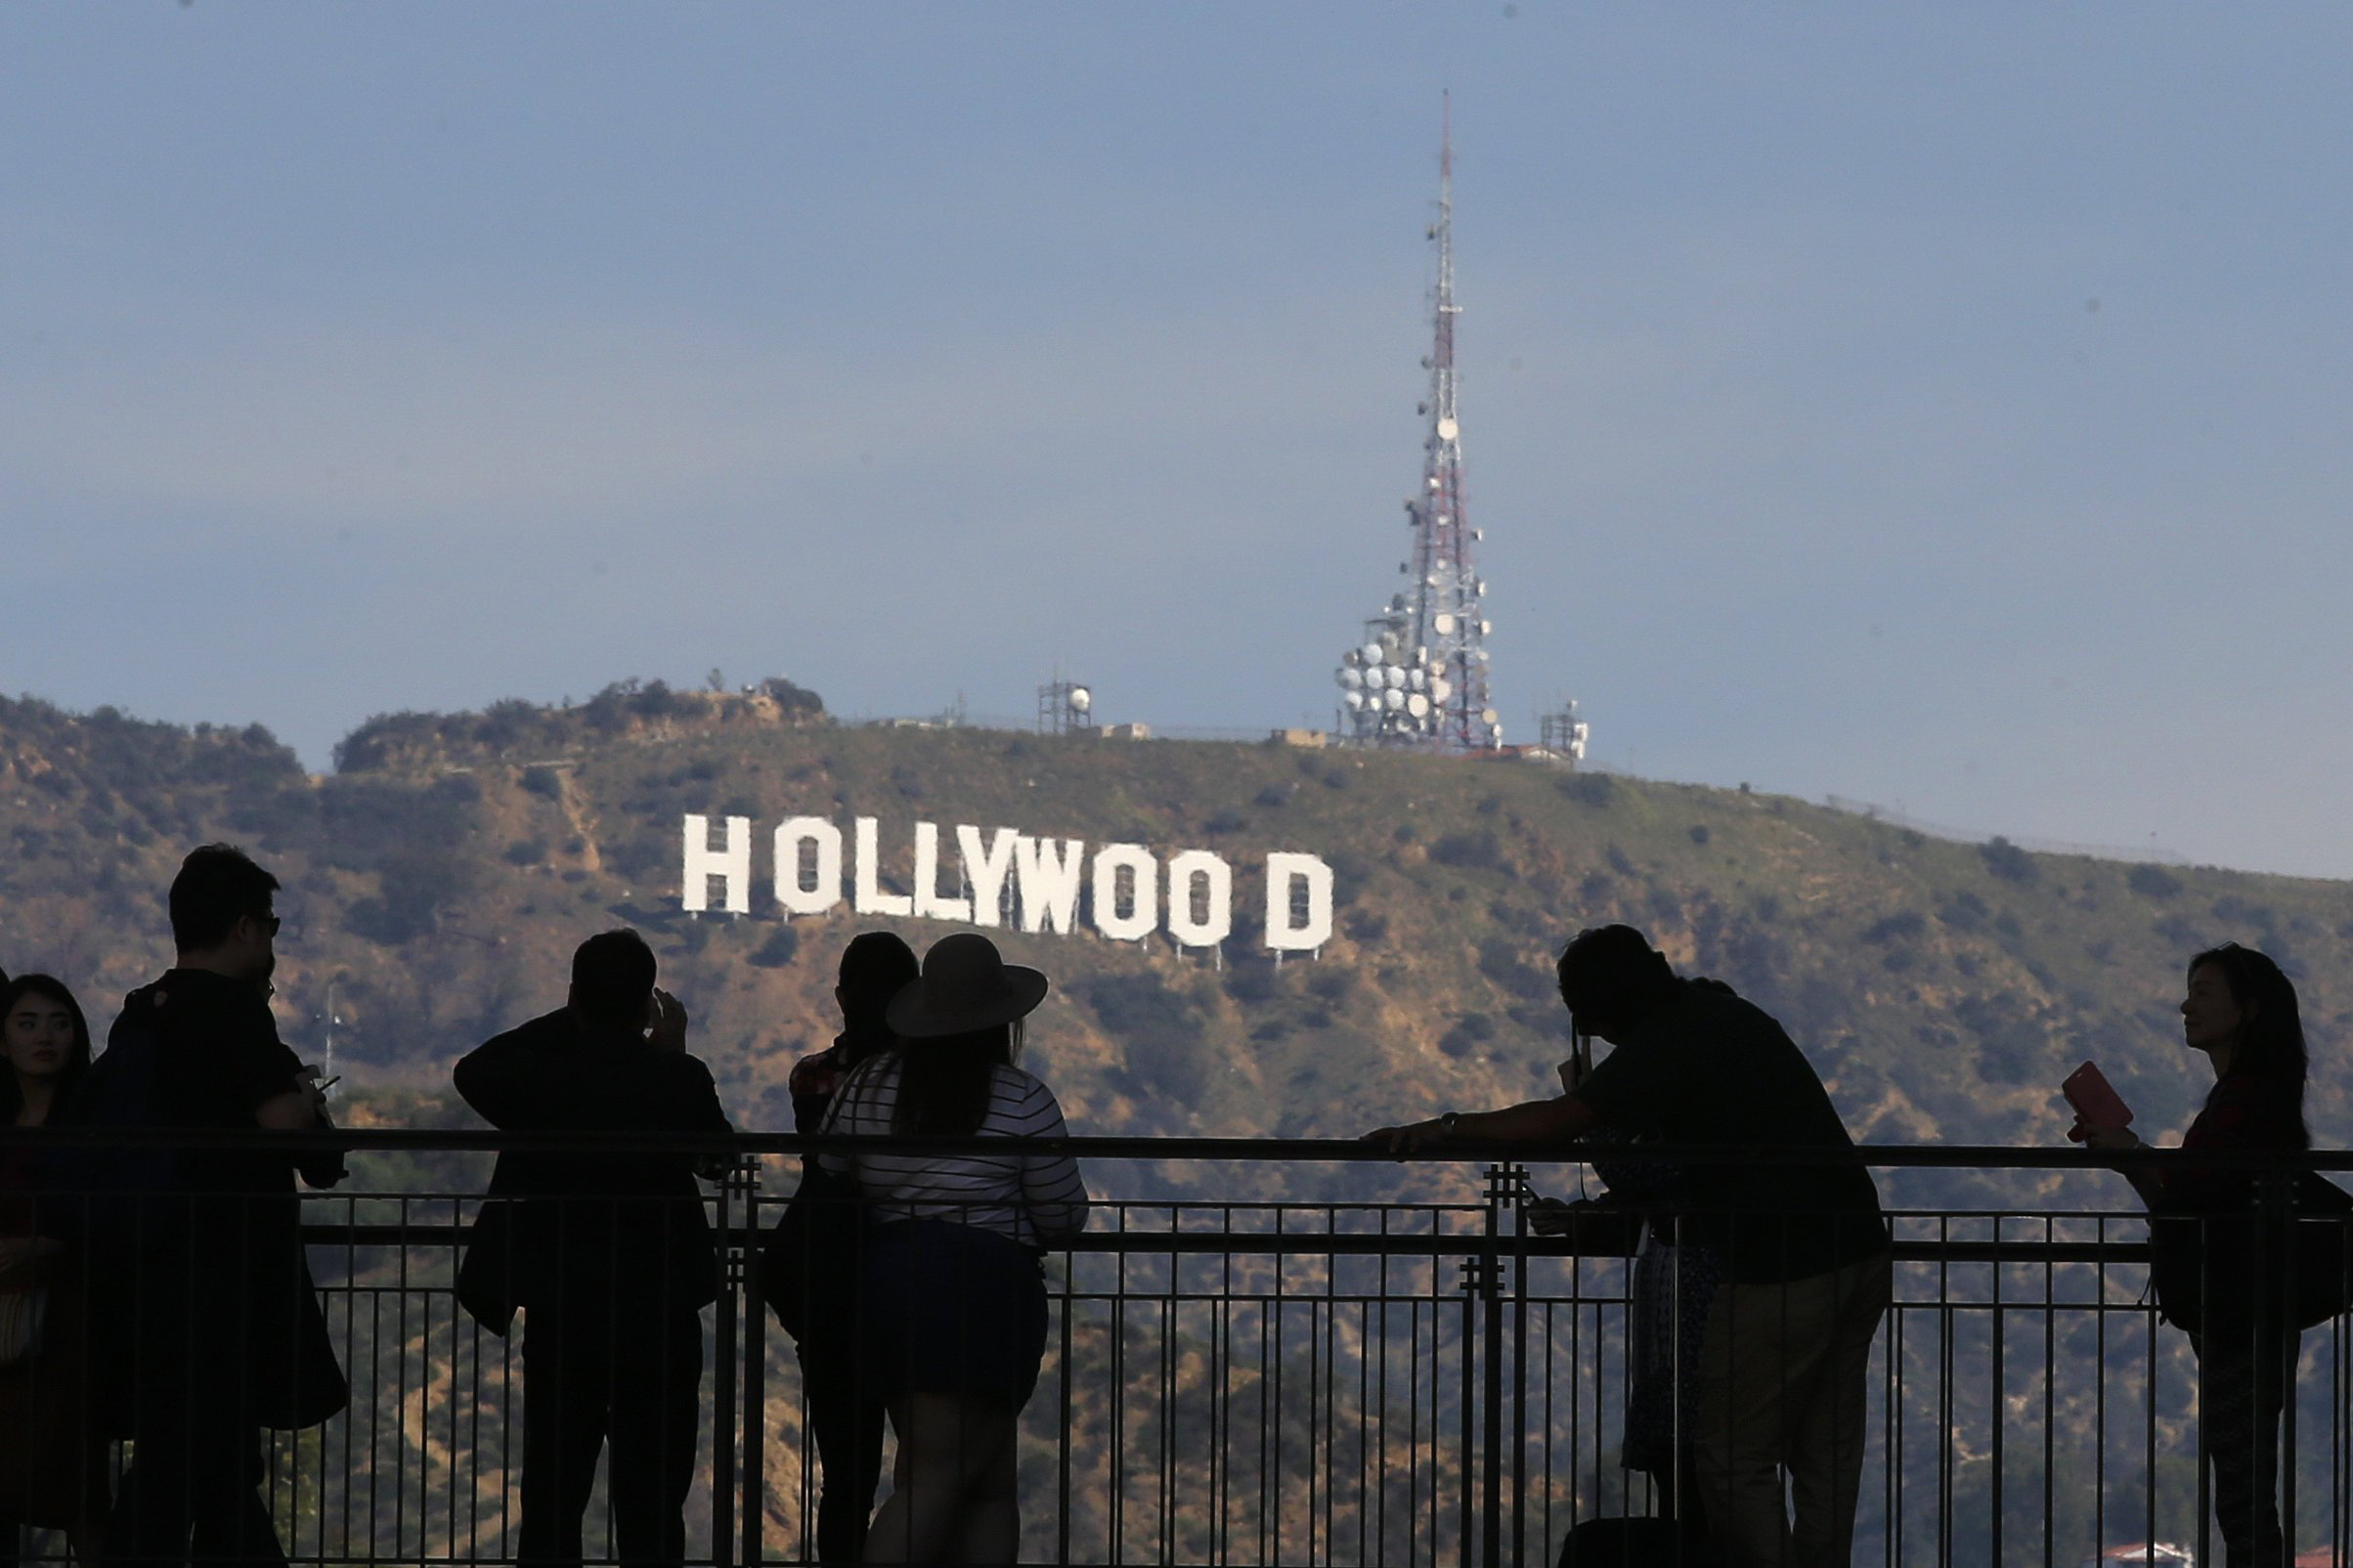 Image: People look on and photograph the famed Hollywood sign as preparations continue for the 88th Academy Awards in Hollywood, Los Angeles